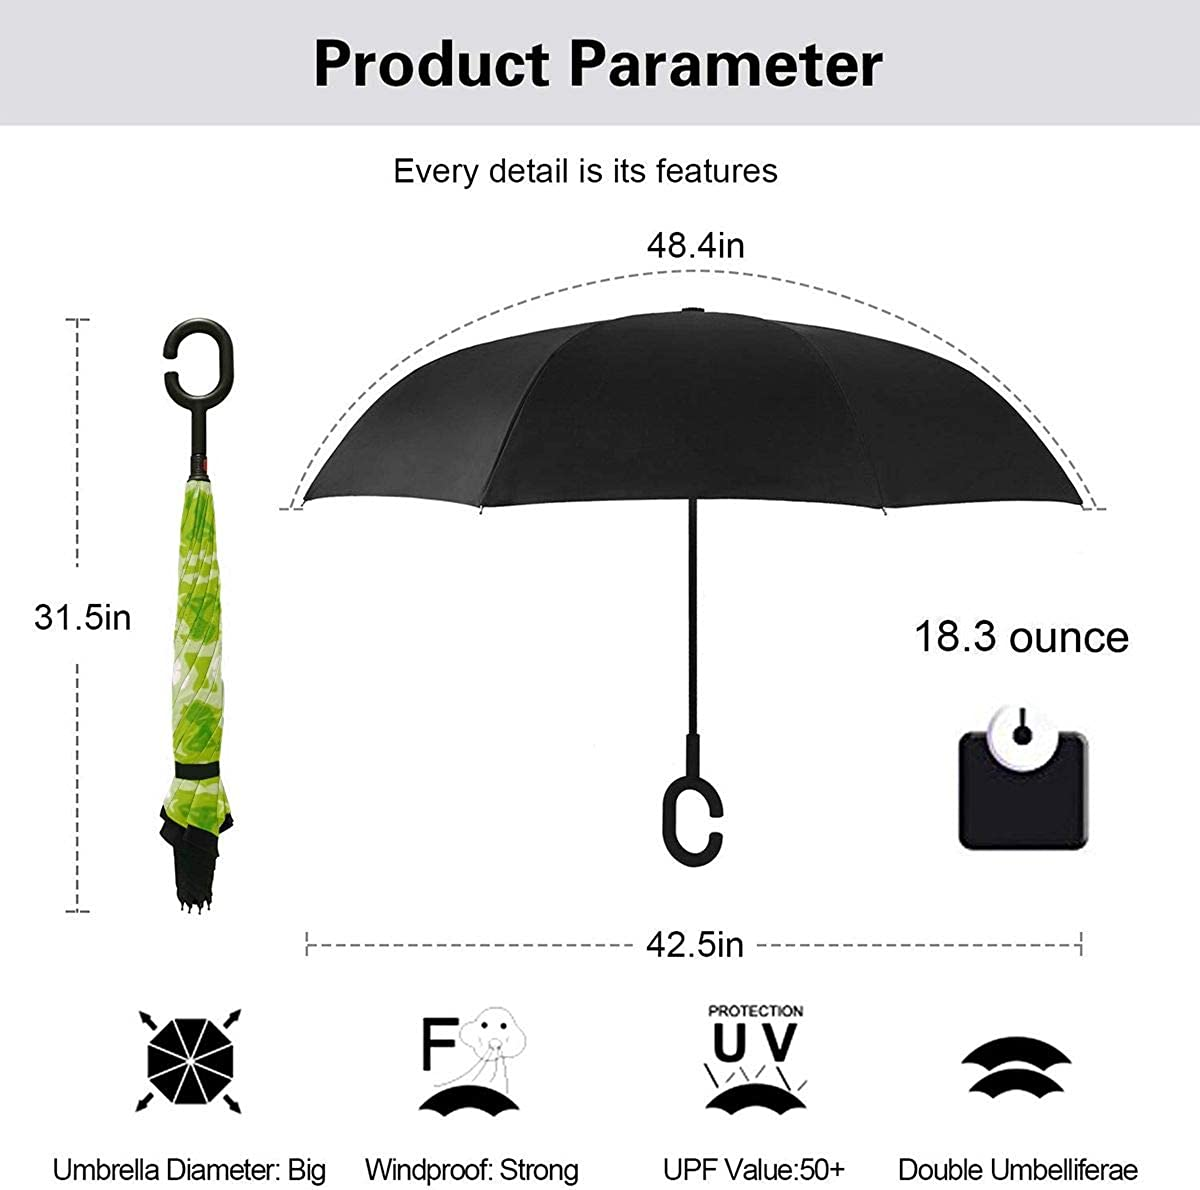 Reverse Umbrella Double Layer Inverted Umbrellas For Car Rain Outdoor With C-Shaped Handle Seamless Wallpaper Background Ornament Green Customized